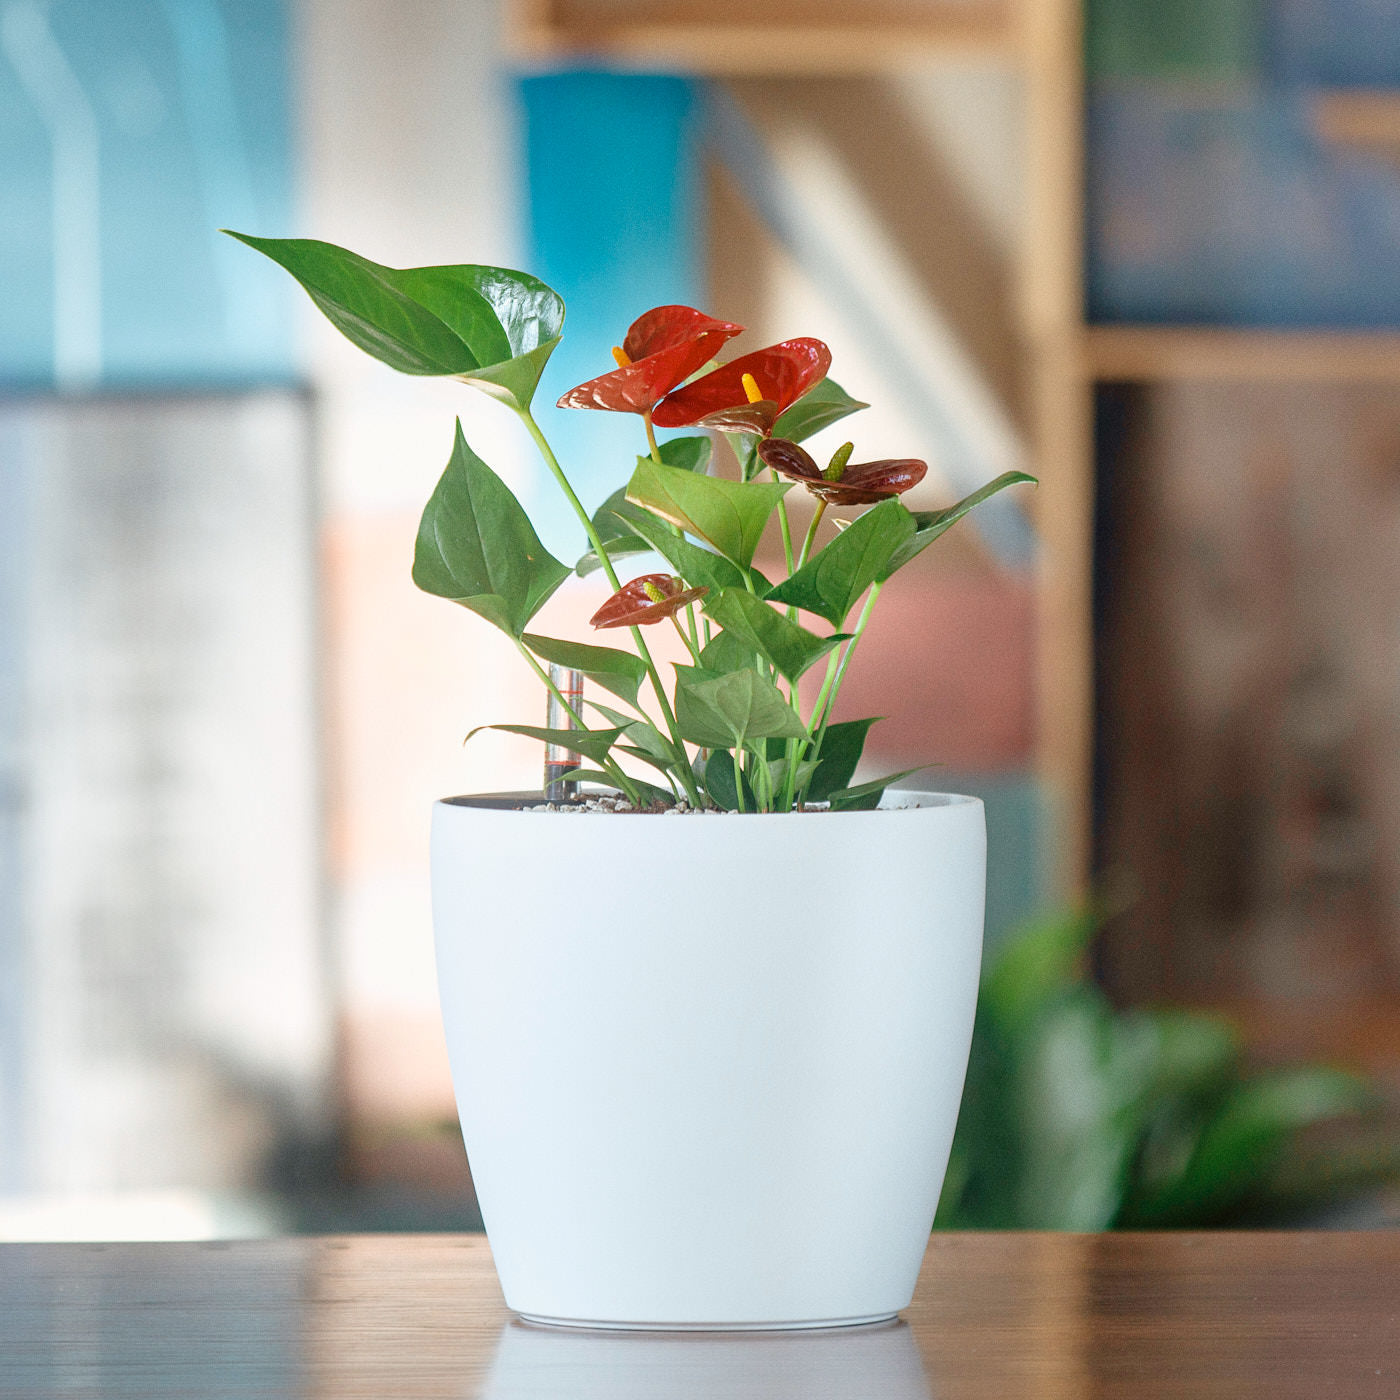 Anthurium Plant Potted In Classico Mini White Planter | My City Plants